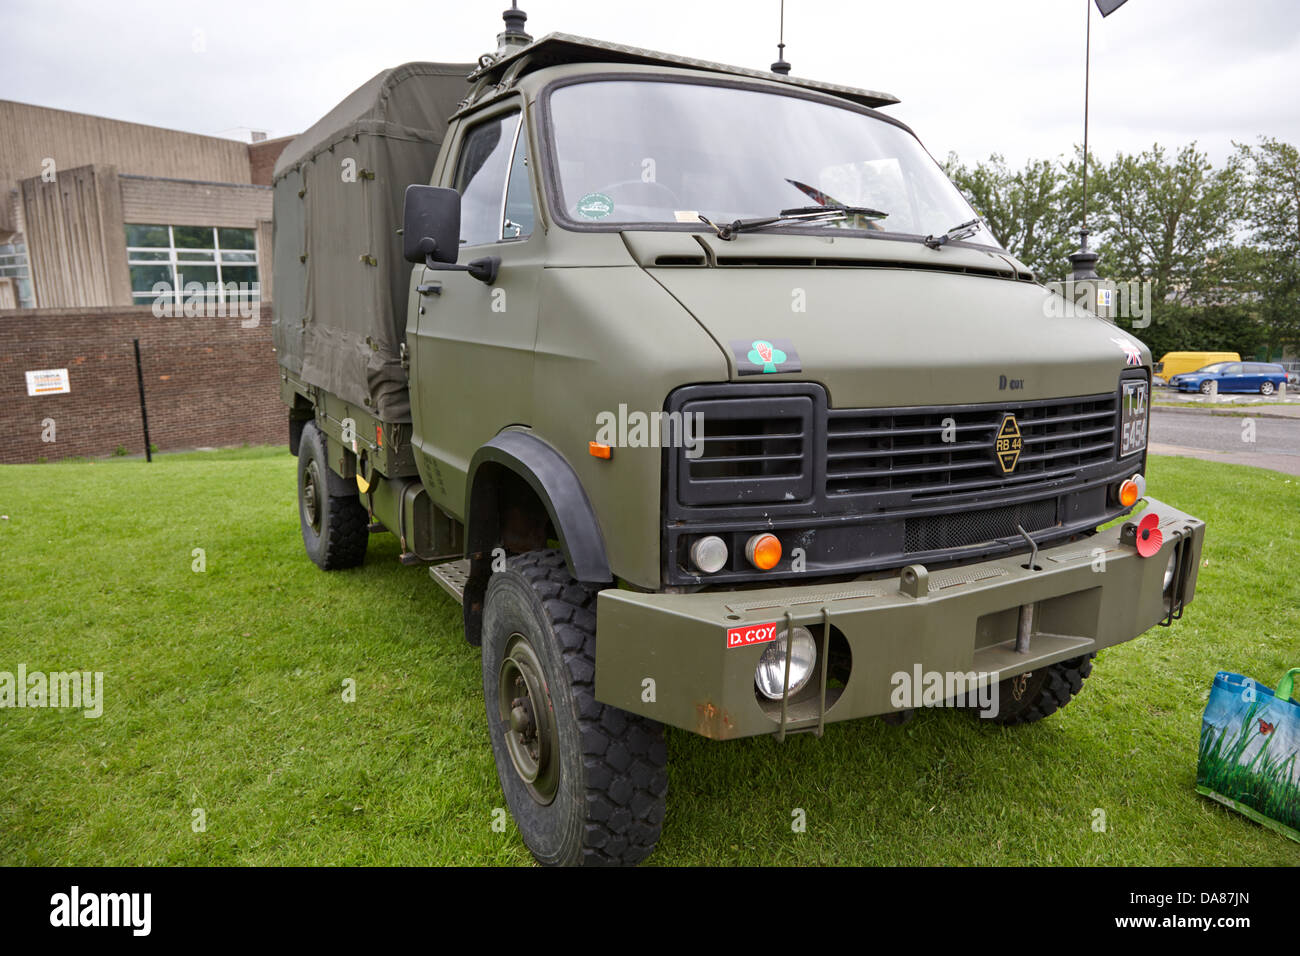 rb44 heavy duty utility truck british army military vehicle on display county down northern ireland uk - Stock Image